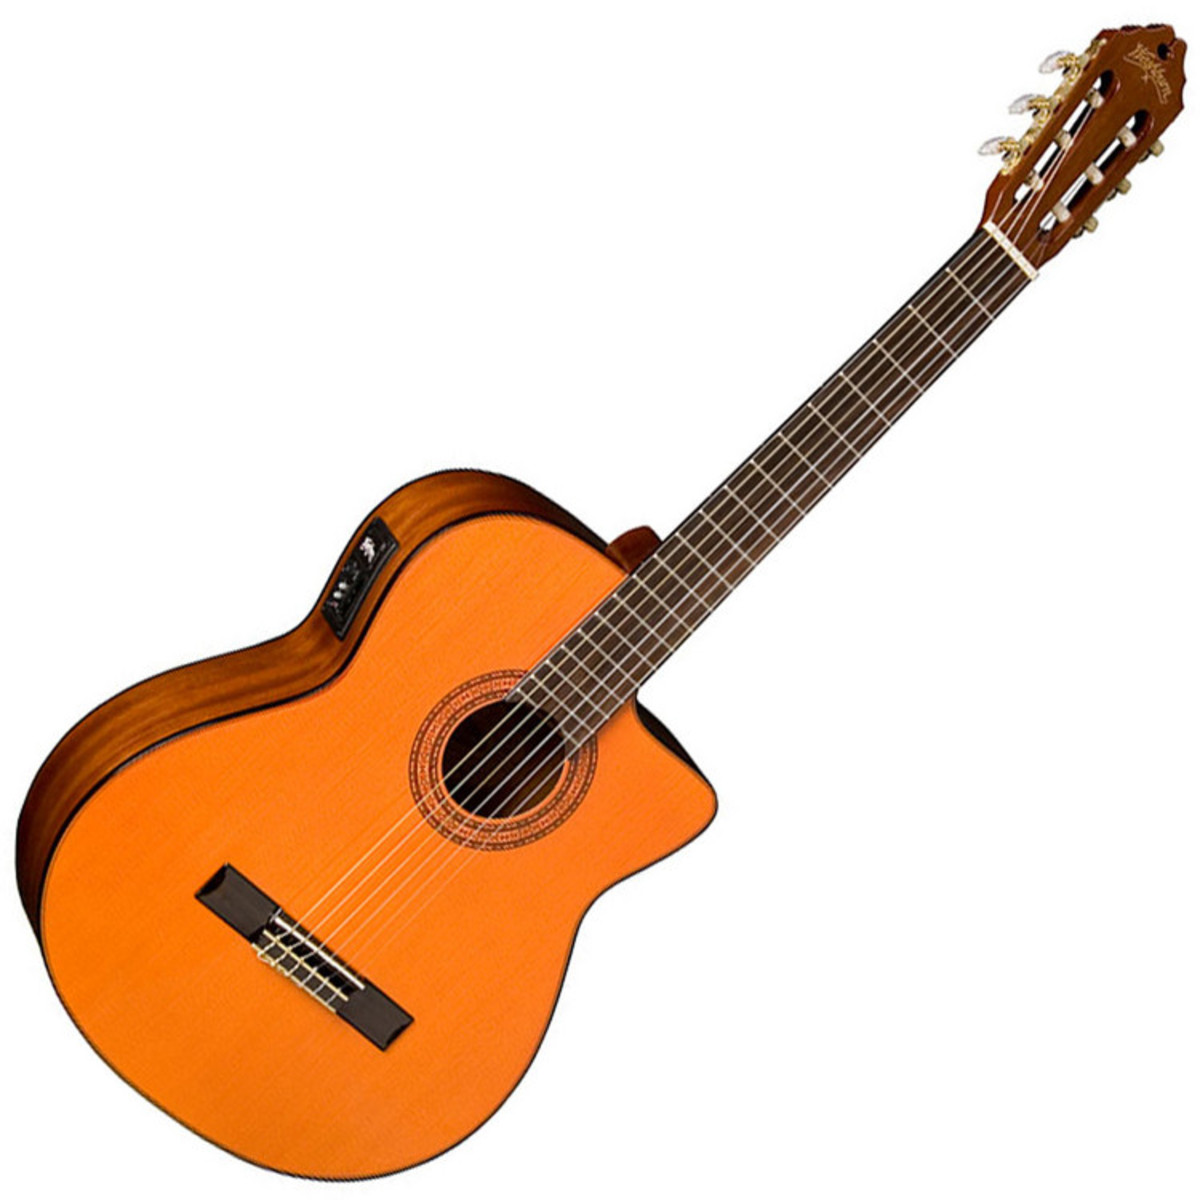 washburn c5ce classical nylon string electro acoustic guitar natural box opened at gear4music. Black Bedroom Furniture Sets. Home Design Ideas